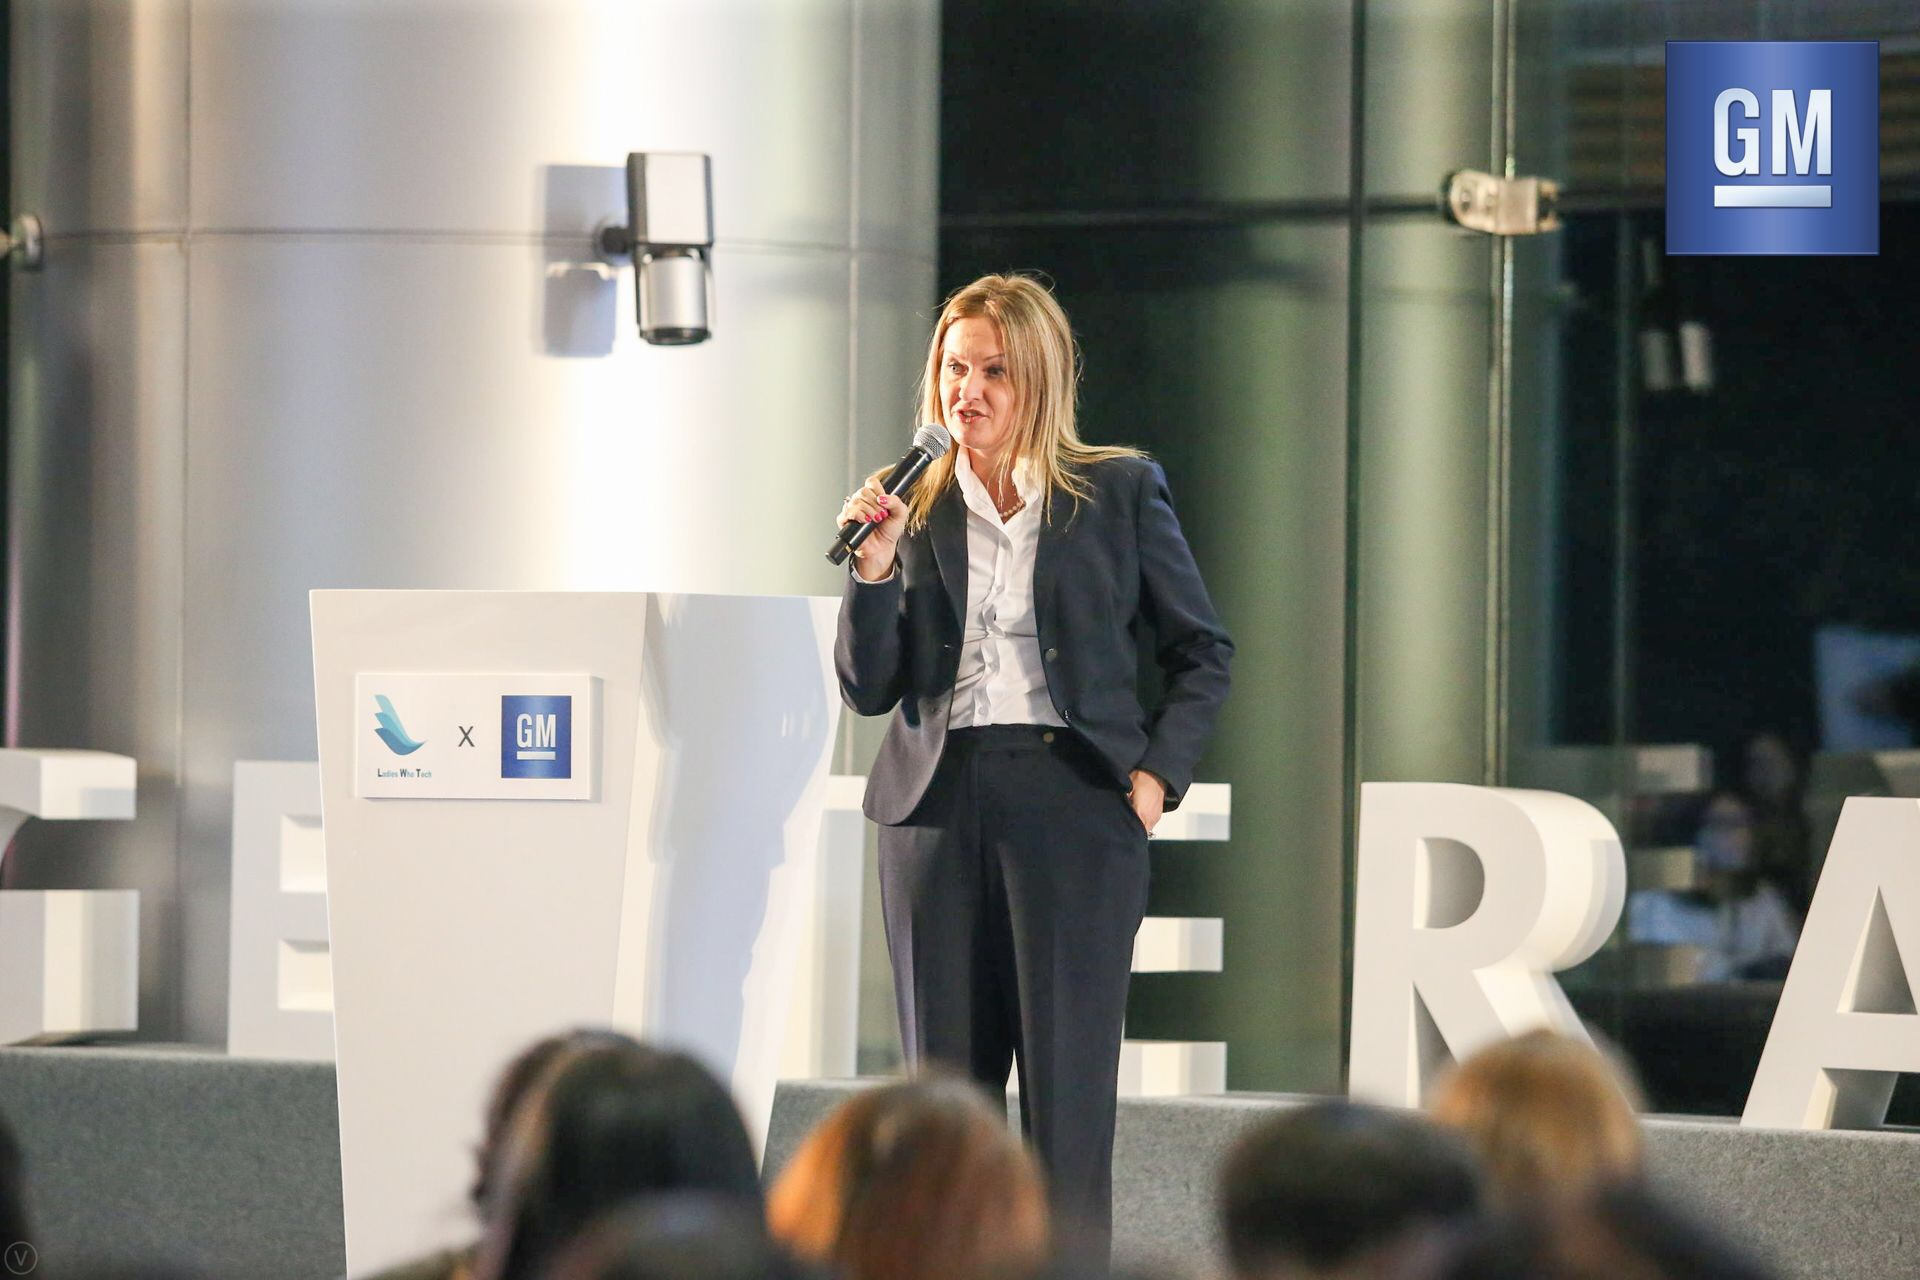 Lynn Longo  MD of Shanghai OnStar, Deputy General Director of Connected Consumer Experience at SAIC-GM